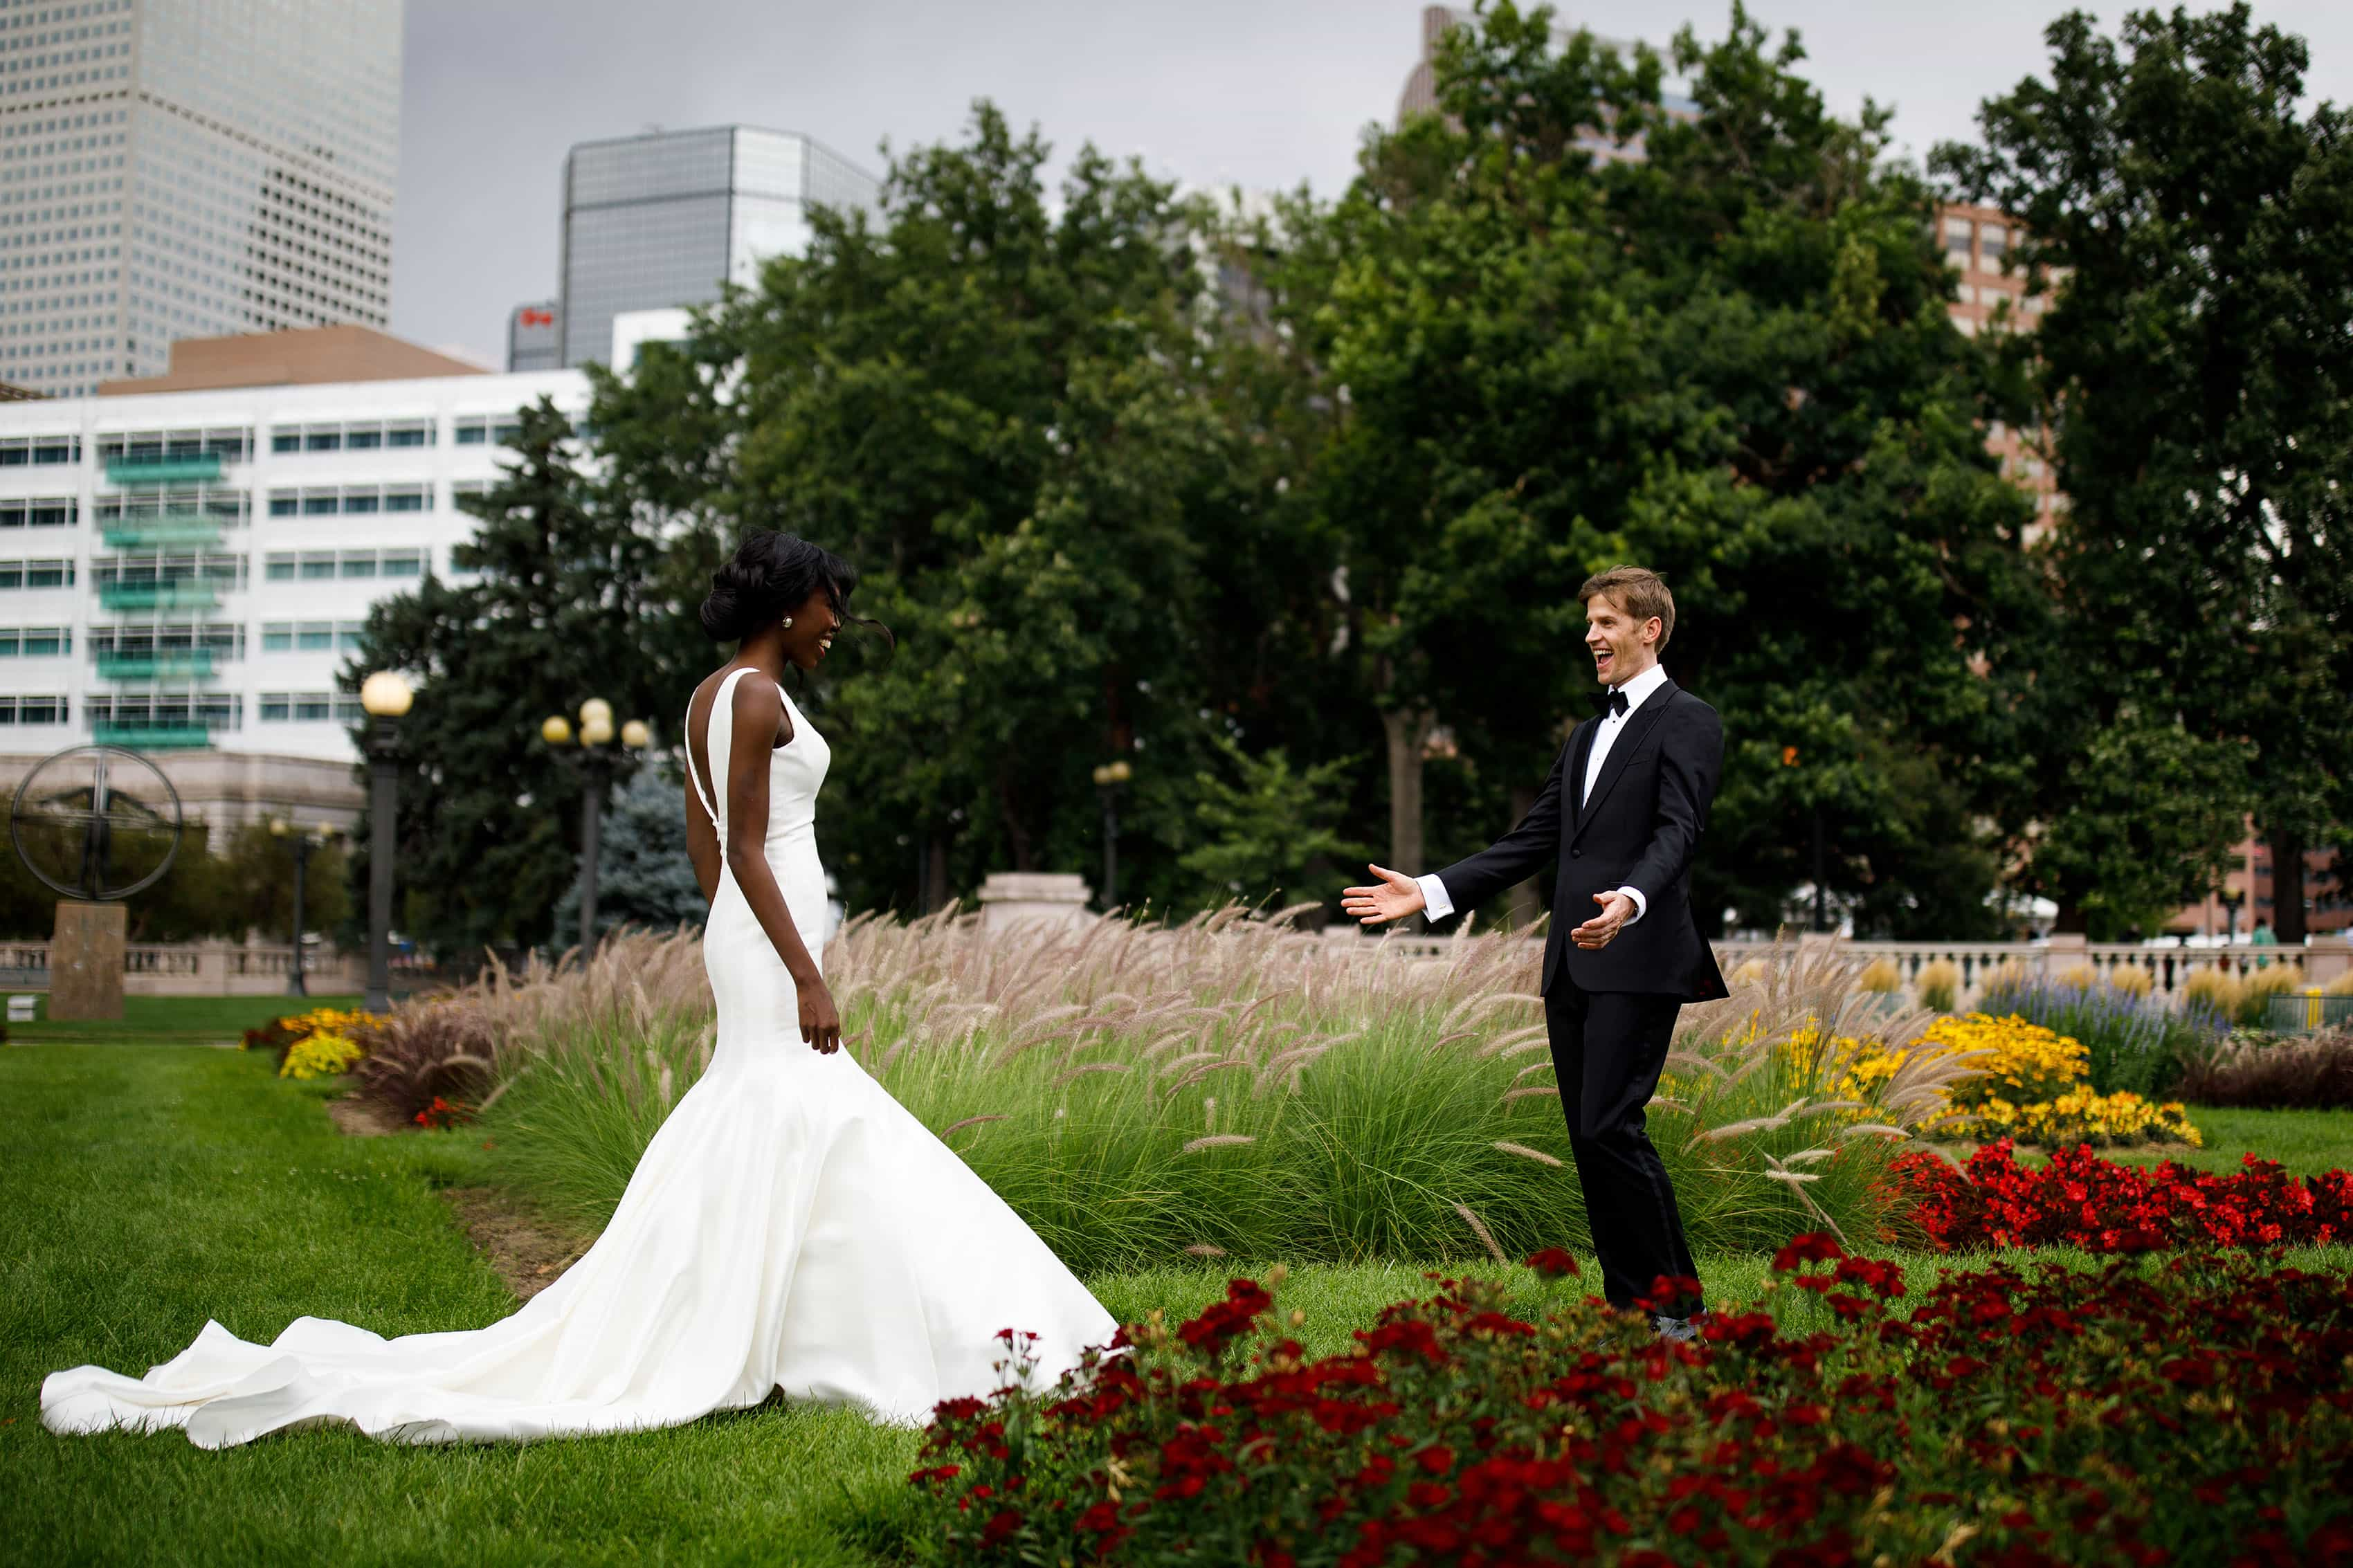 A couple react during their first look in Civic Center Park on their wedding day